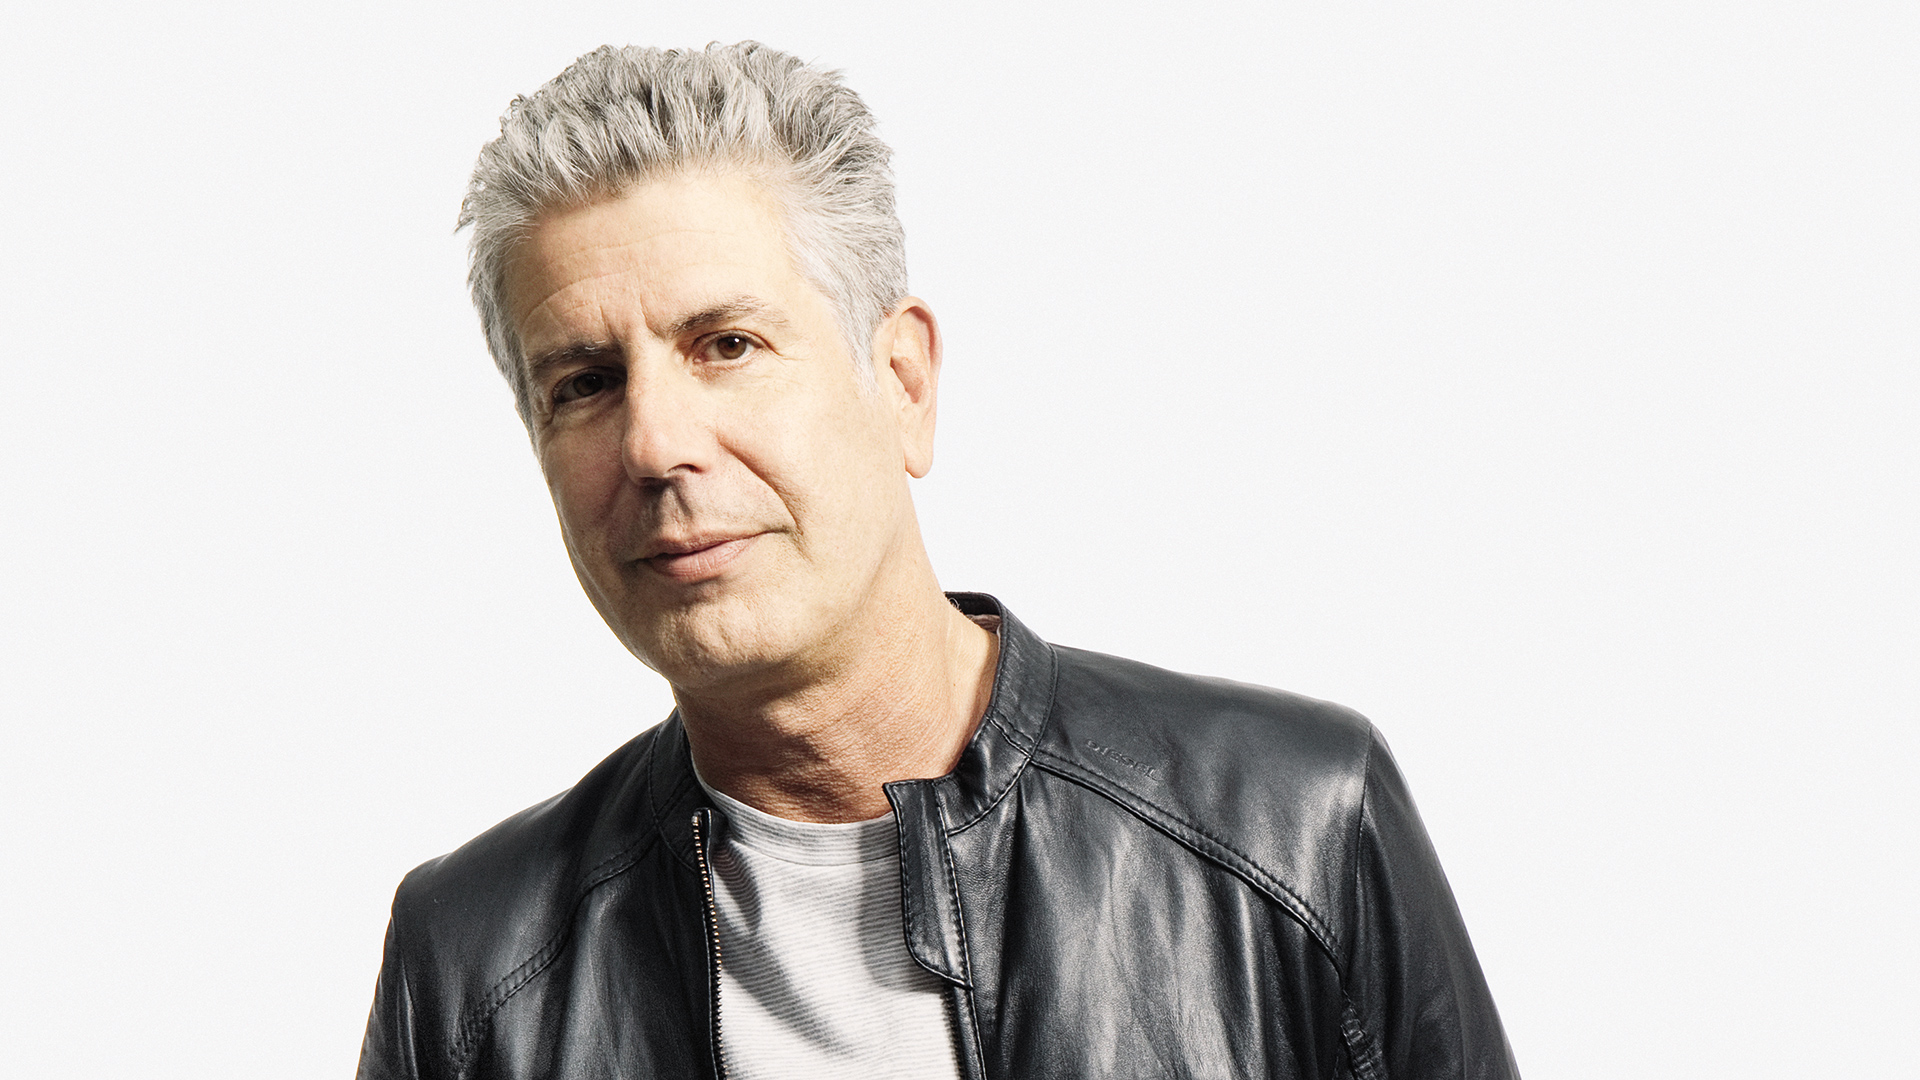 Anthony Bourdain earned a  million dollar salary, leaving the net worth at 9 million in 2017